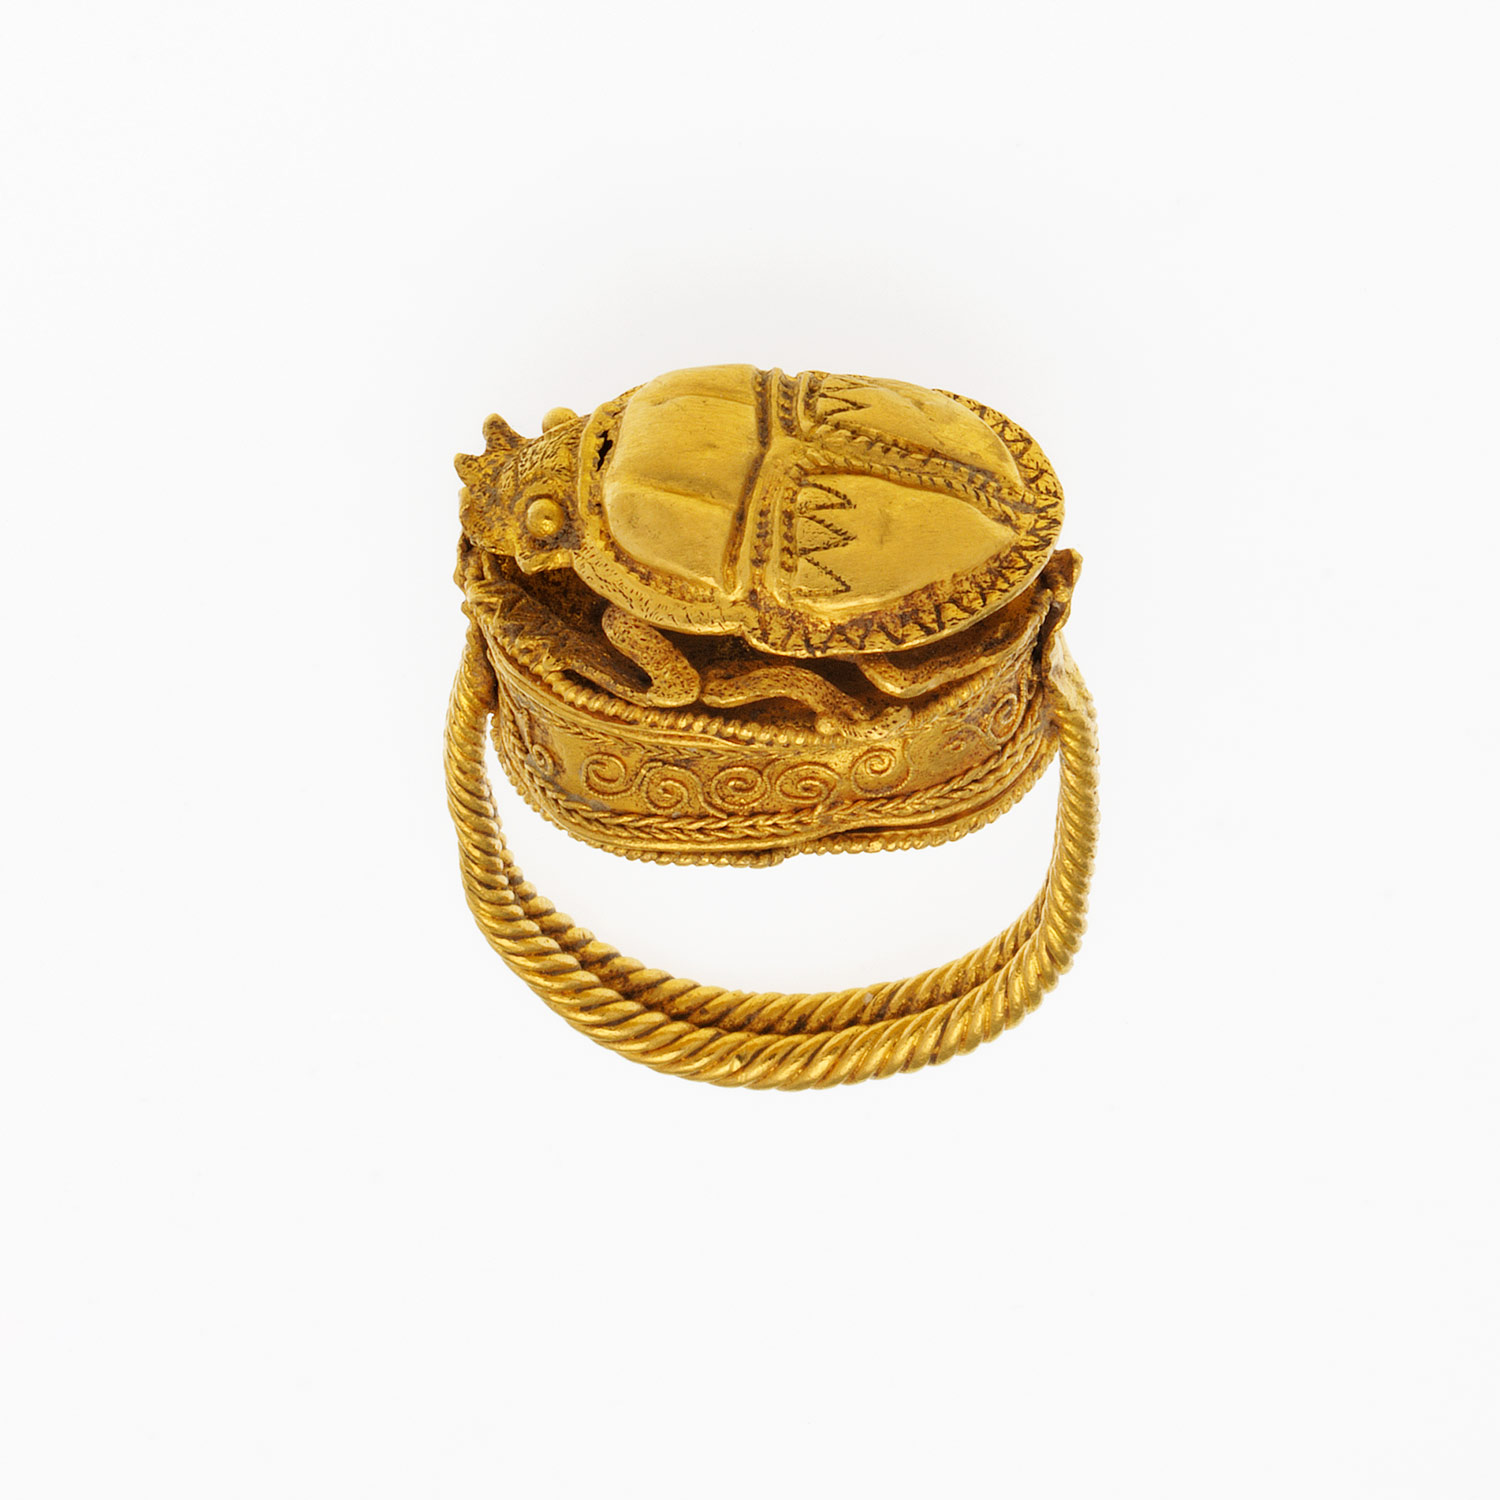 Gold Box Surmounted by a Scarab